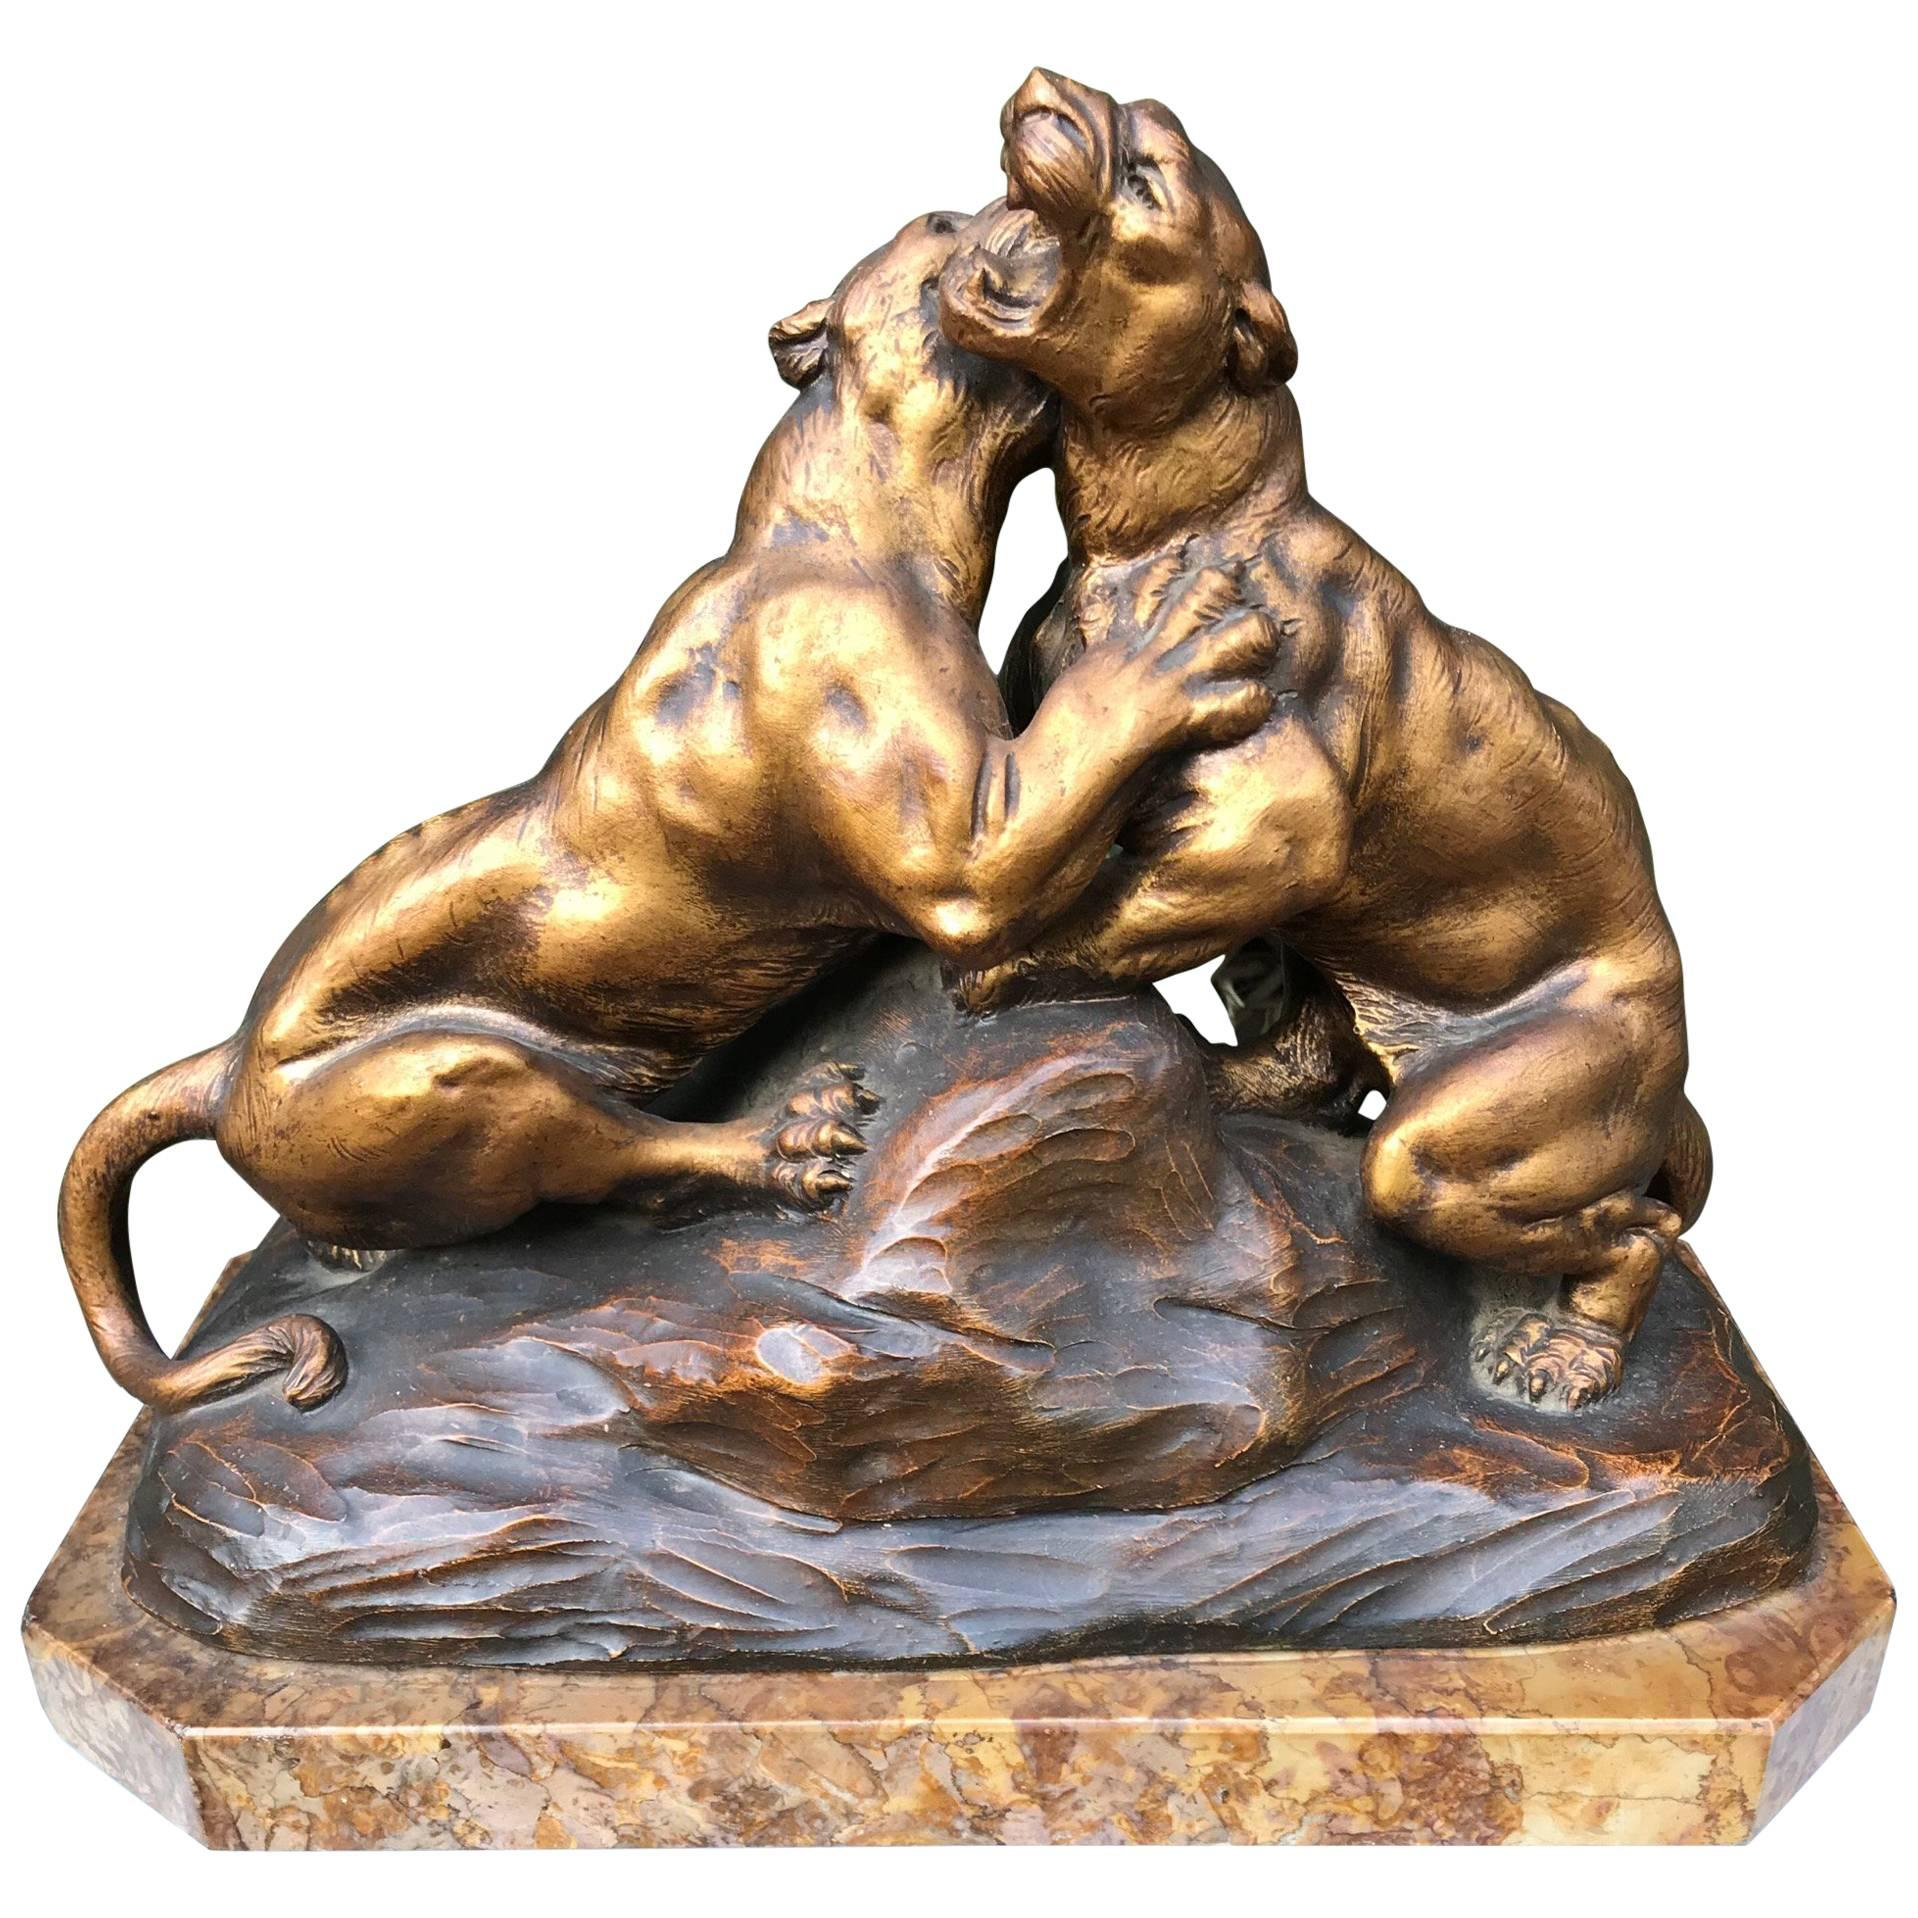 Early 1900 Terracotta Sculpture of Fighting Panthers on a Marble Base by Fagotto